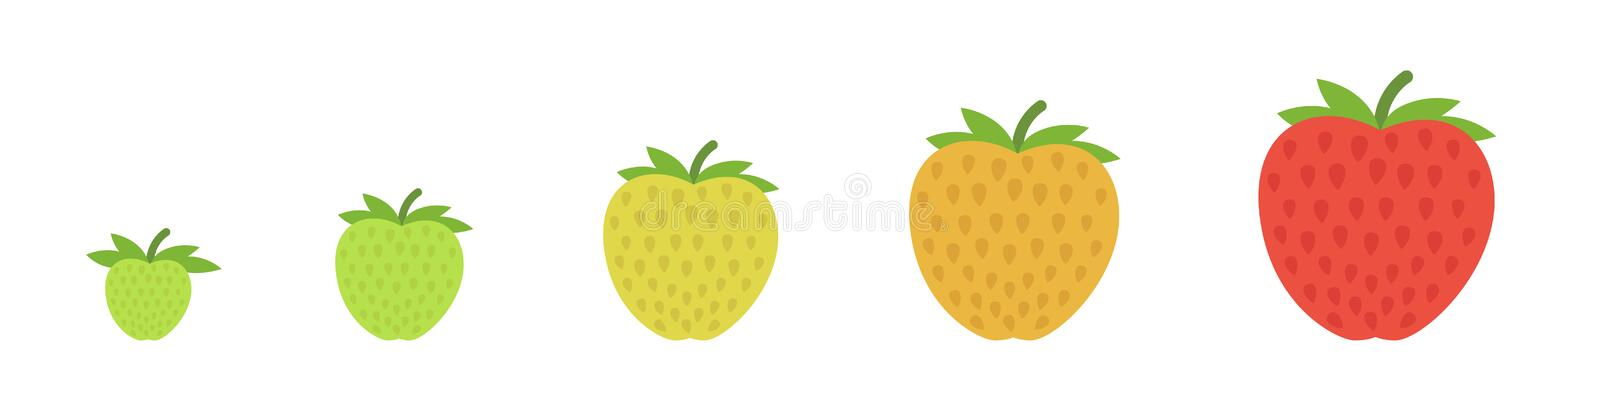 Strawberry ripeness stages. Harvesting and ripening berry. Vegetable colour gradation set plant. Ripening period and harvest. Animation development progression royalty free illustration